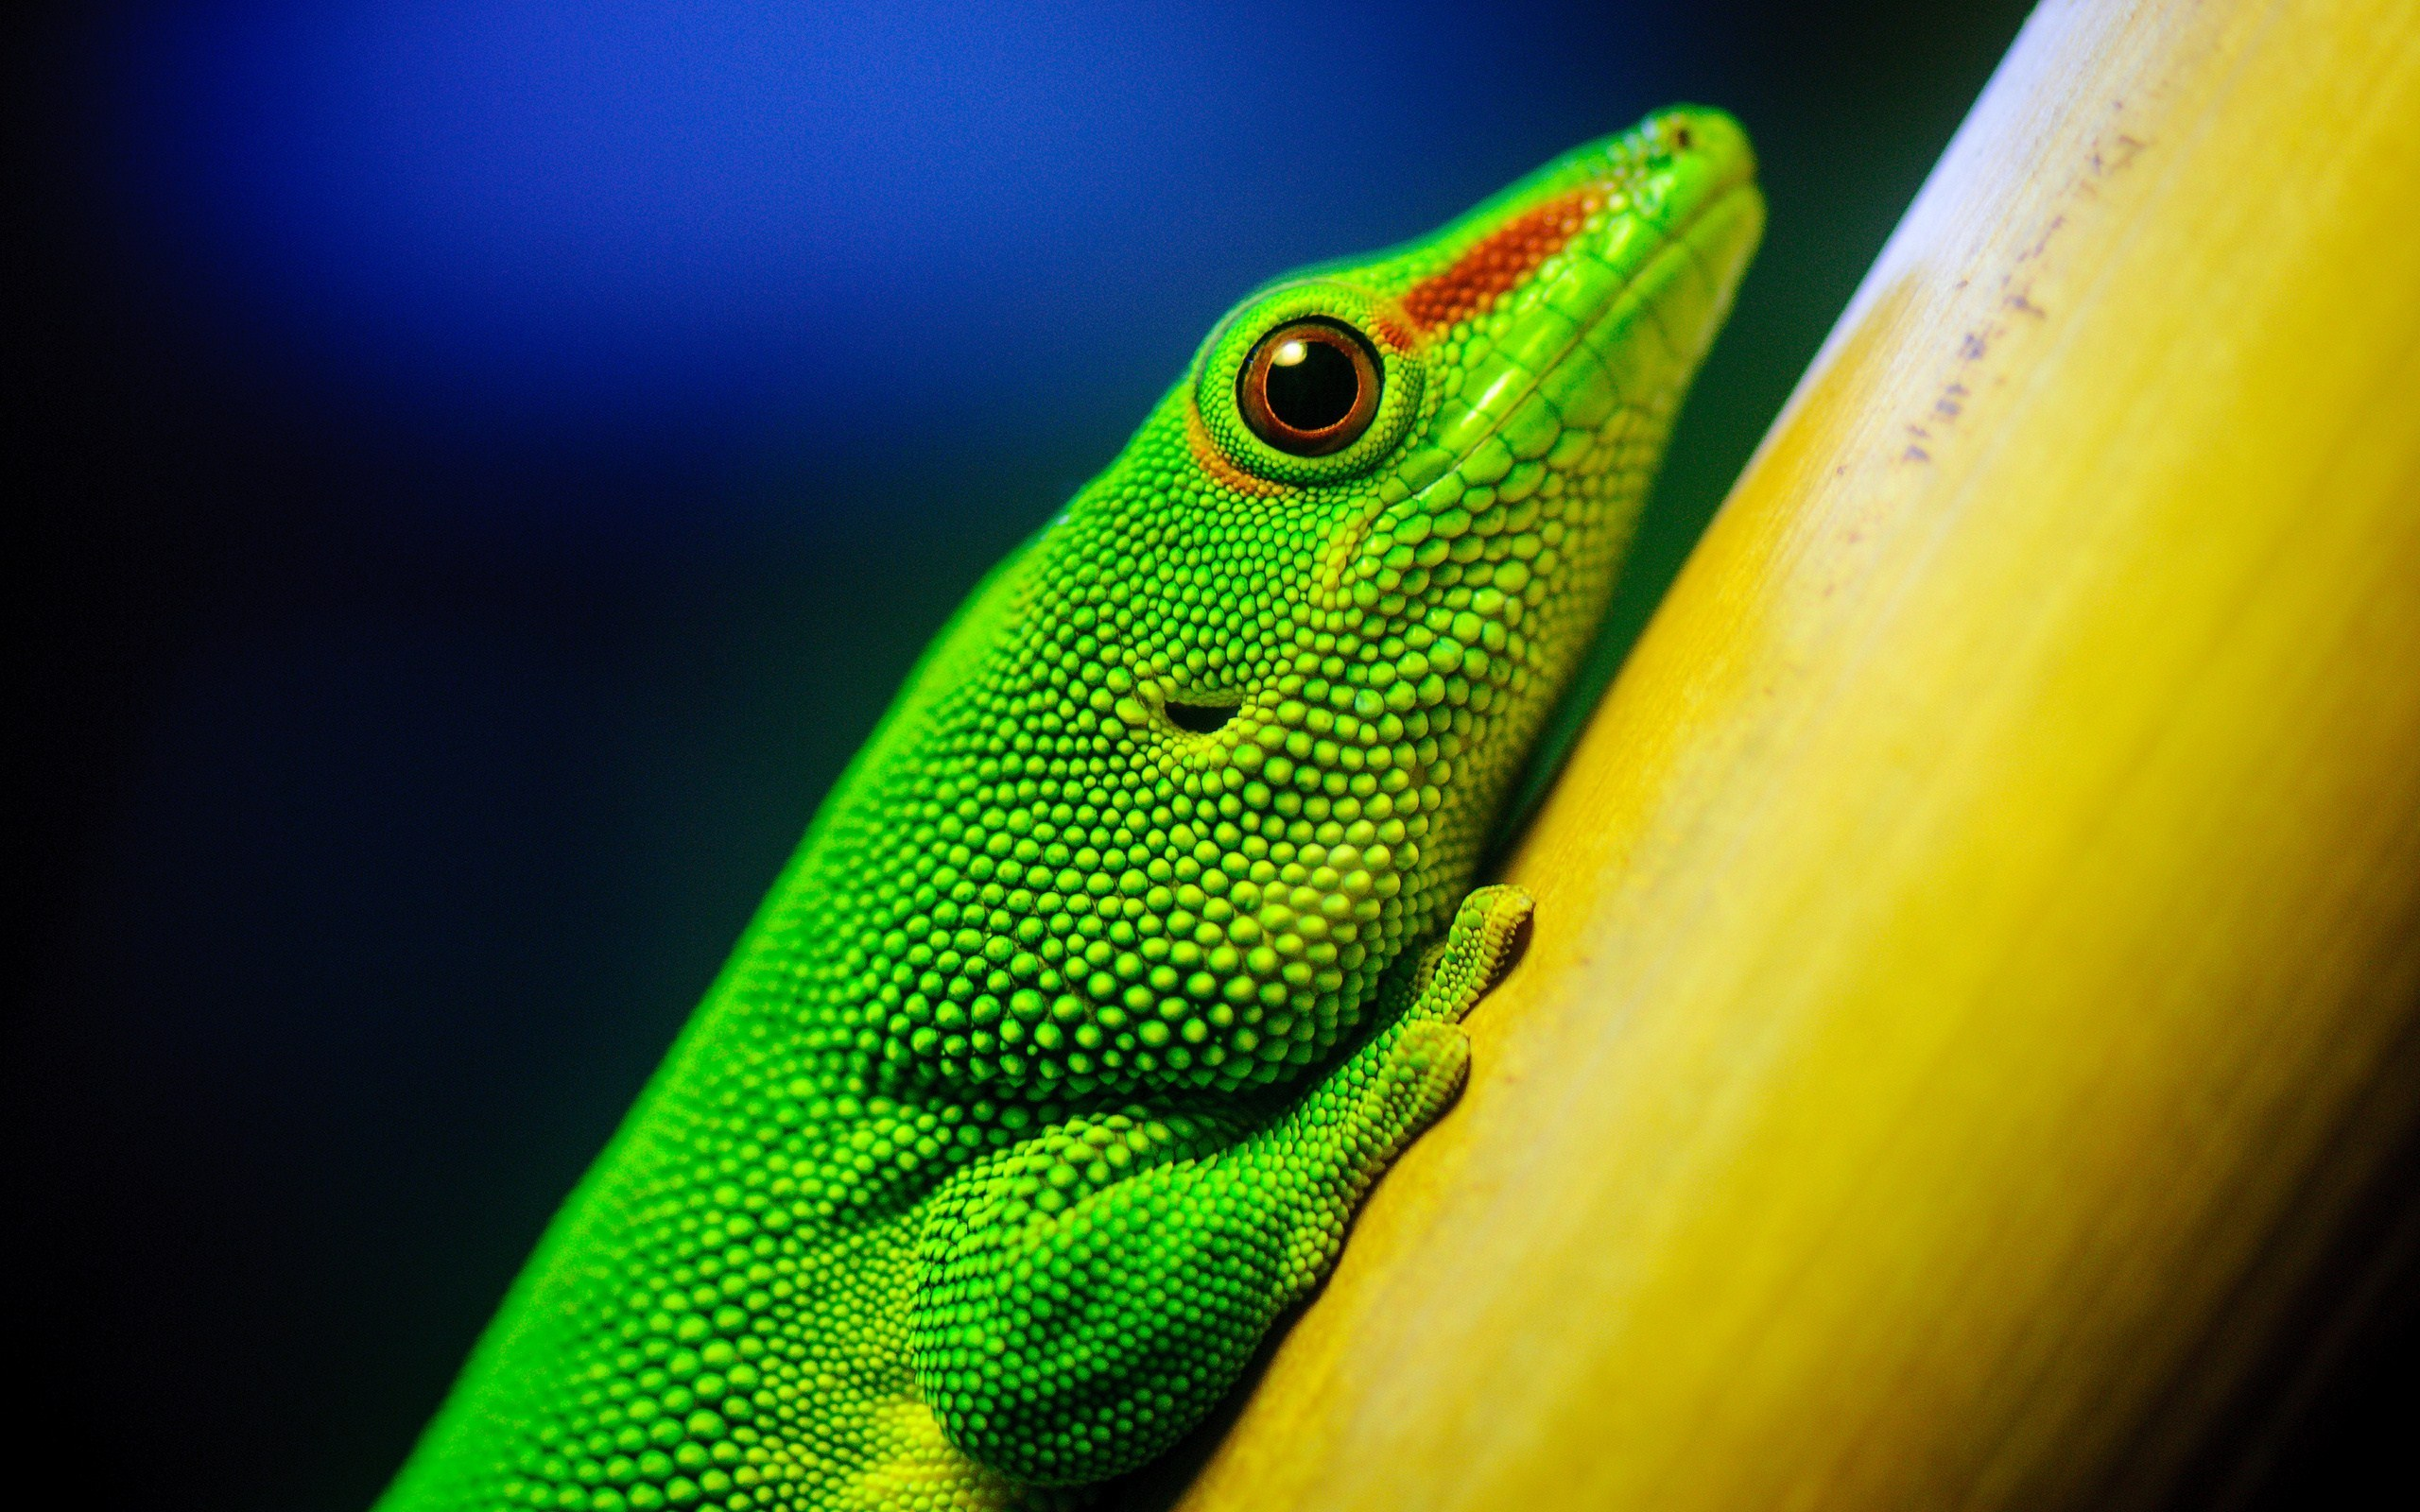 green lizard branch close up blue light wide hd wallpaper is a lovely background.